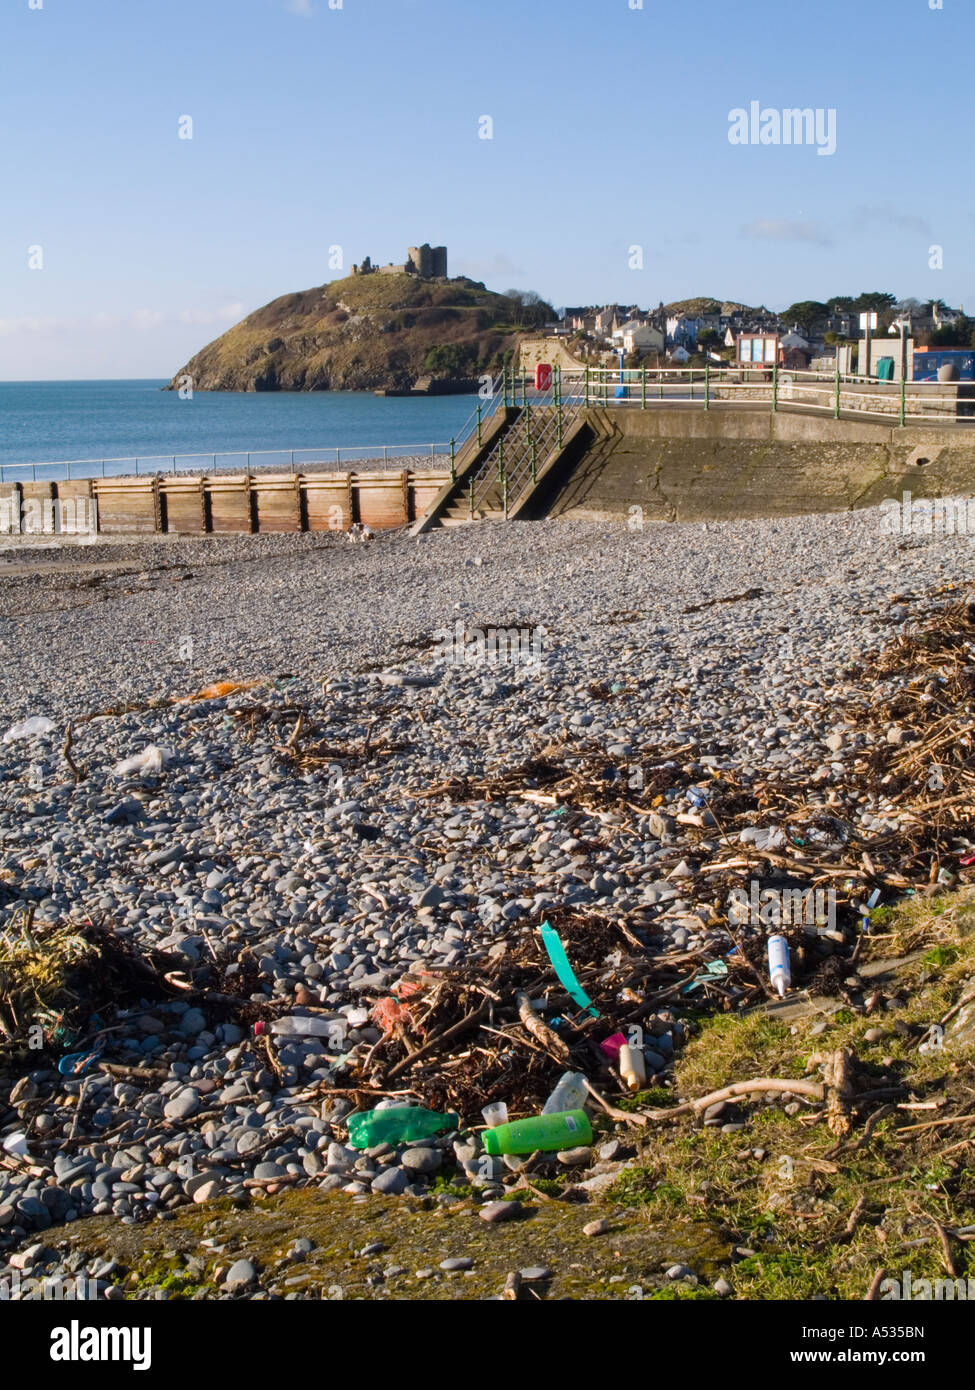 Flotsam and jetsam rubbish on a beach littered with plastic bottles cans nylon rope washed up on shore Criccieth - Stock Image